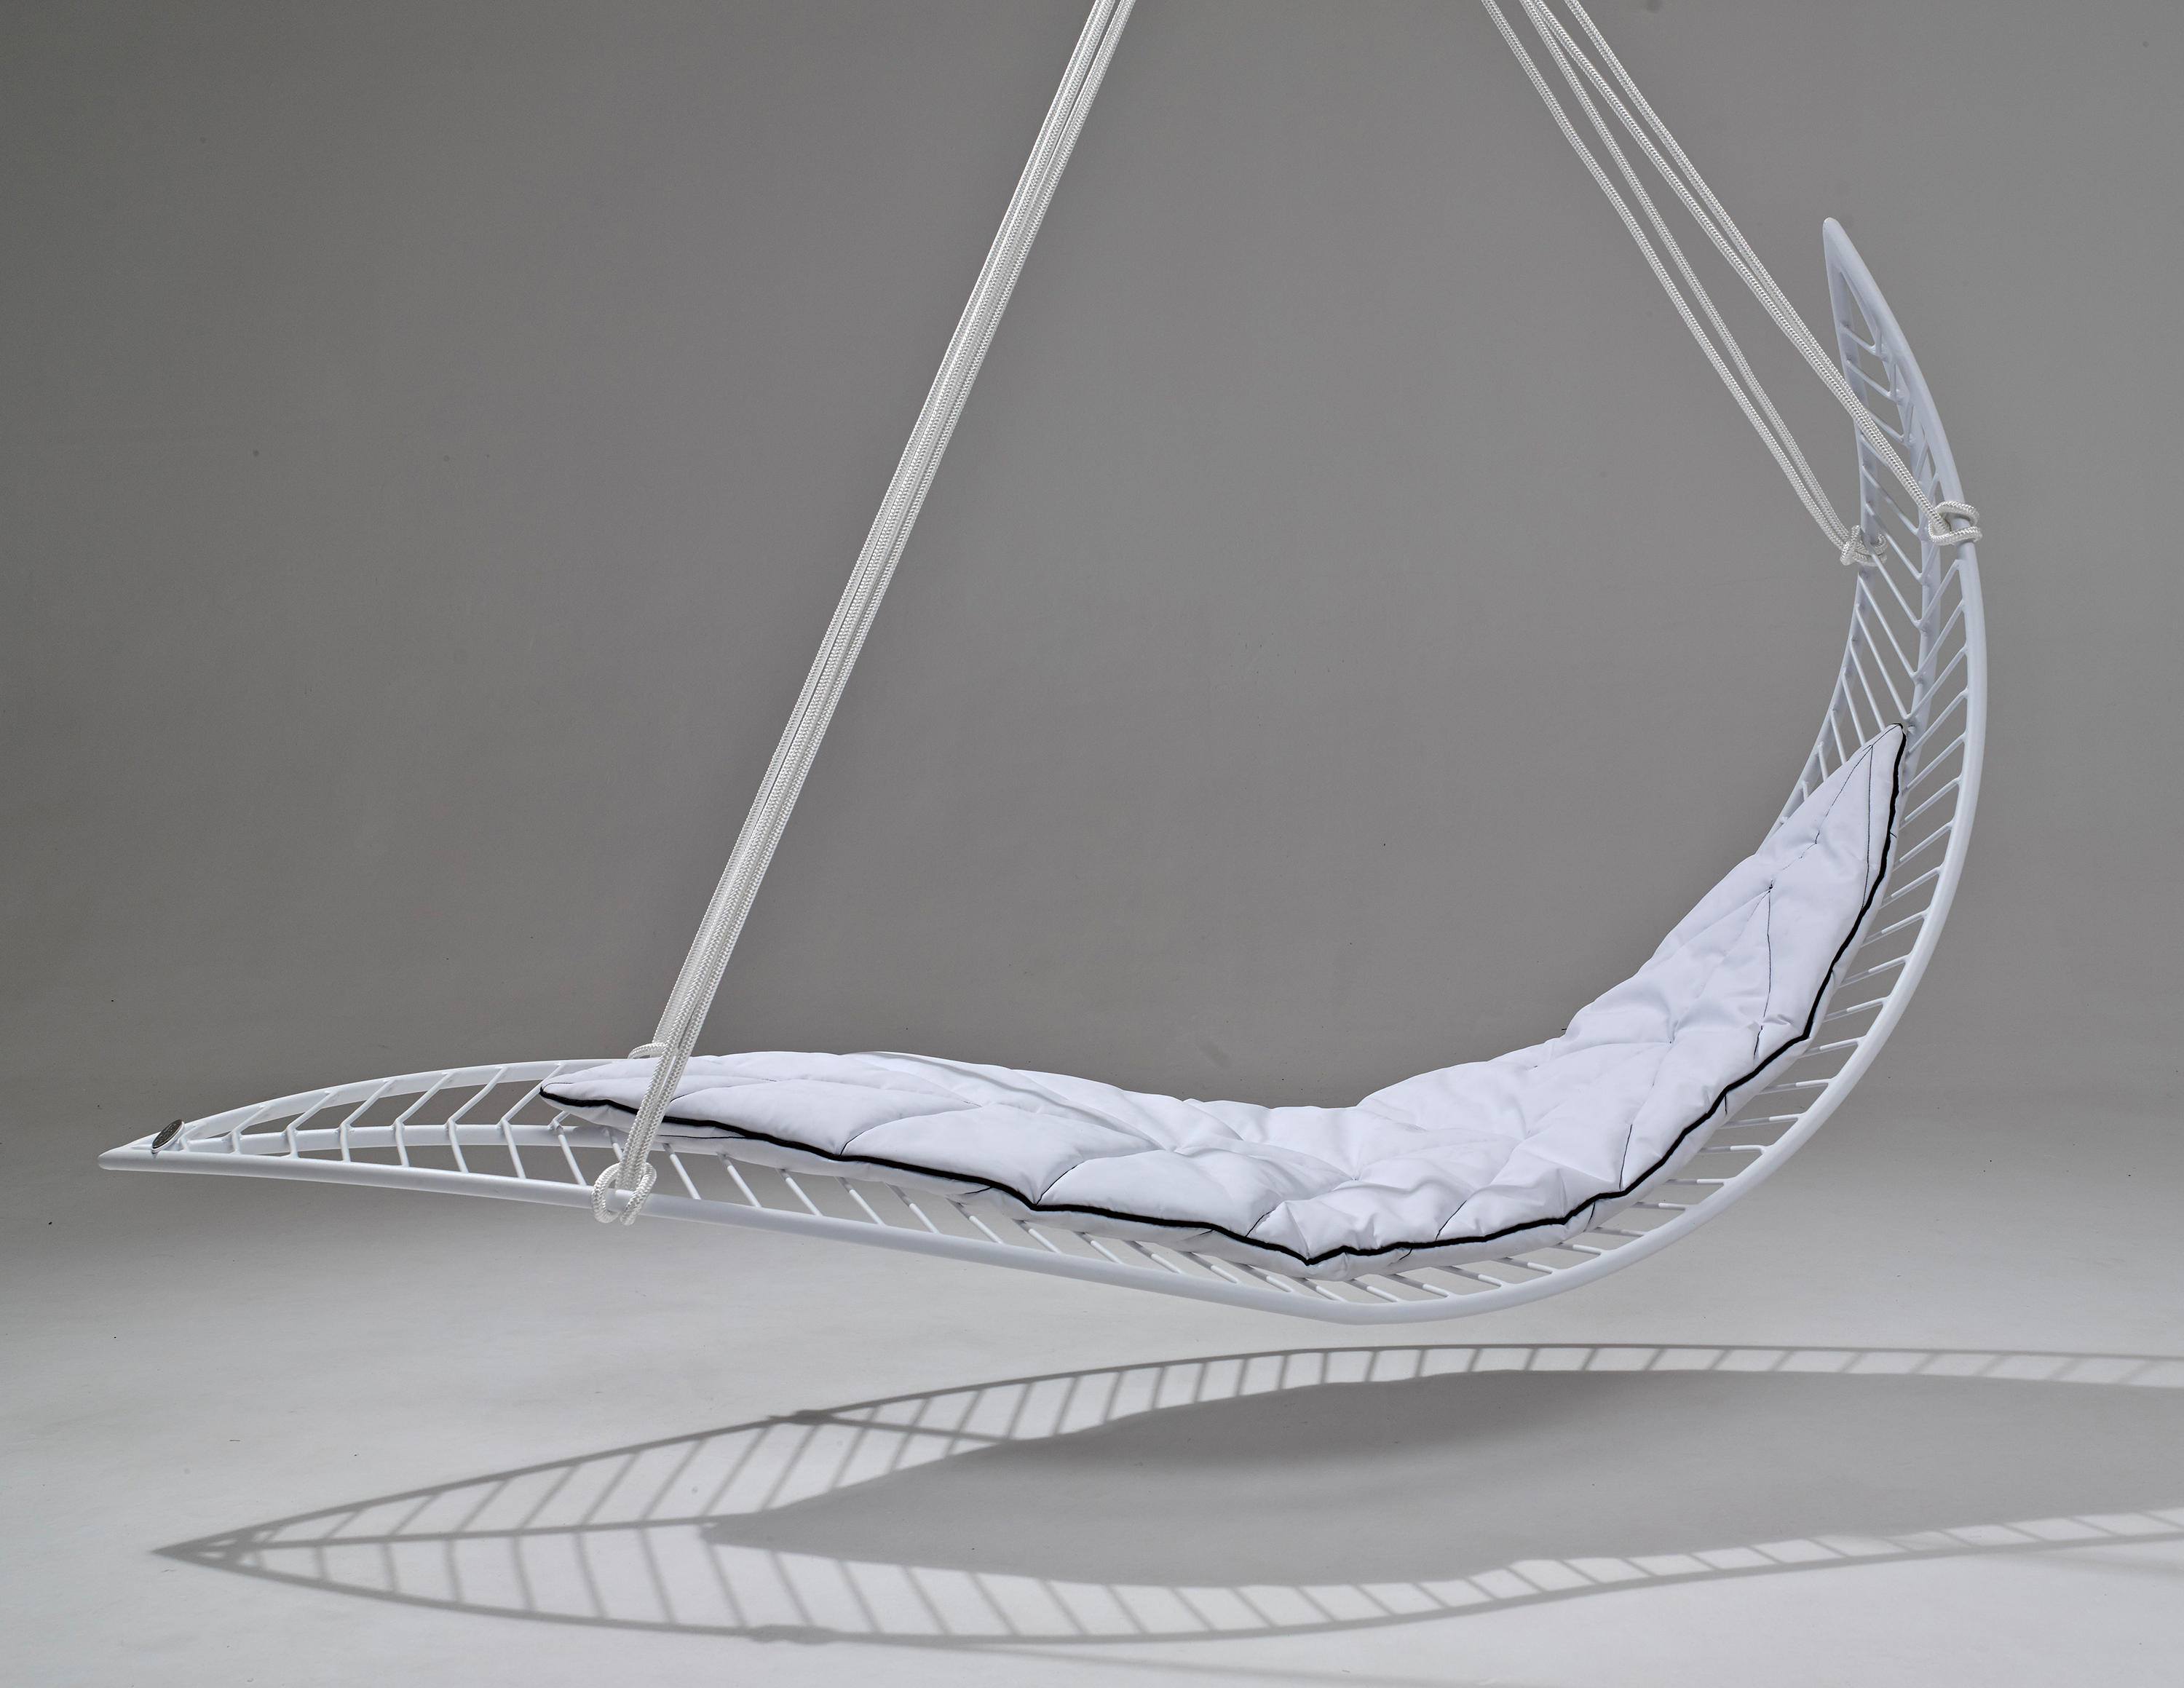 swing seat johannesburg fishing bed chair legs cushions and mats leaf mat from studio